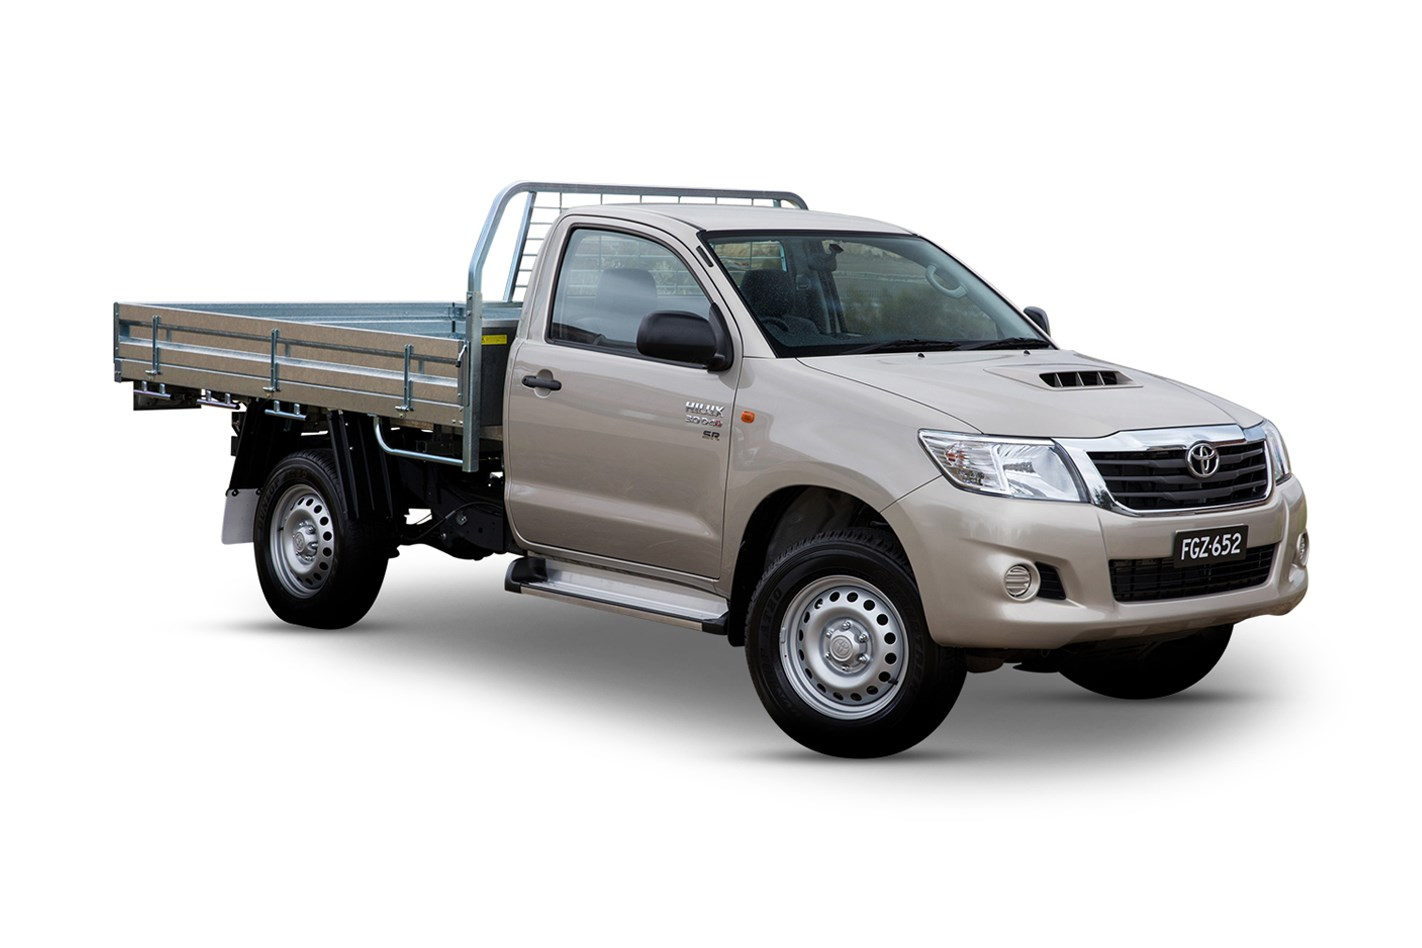 Amazing Toyota Hilux Pictures & Backgrounds